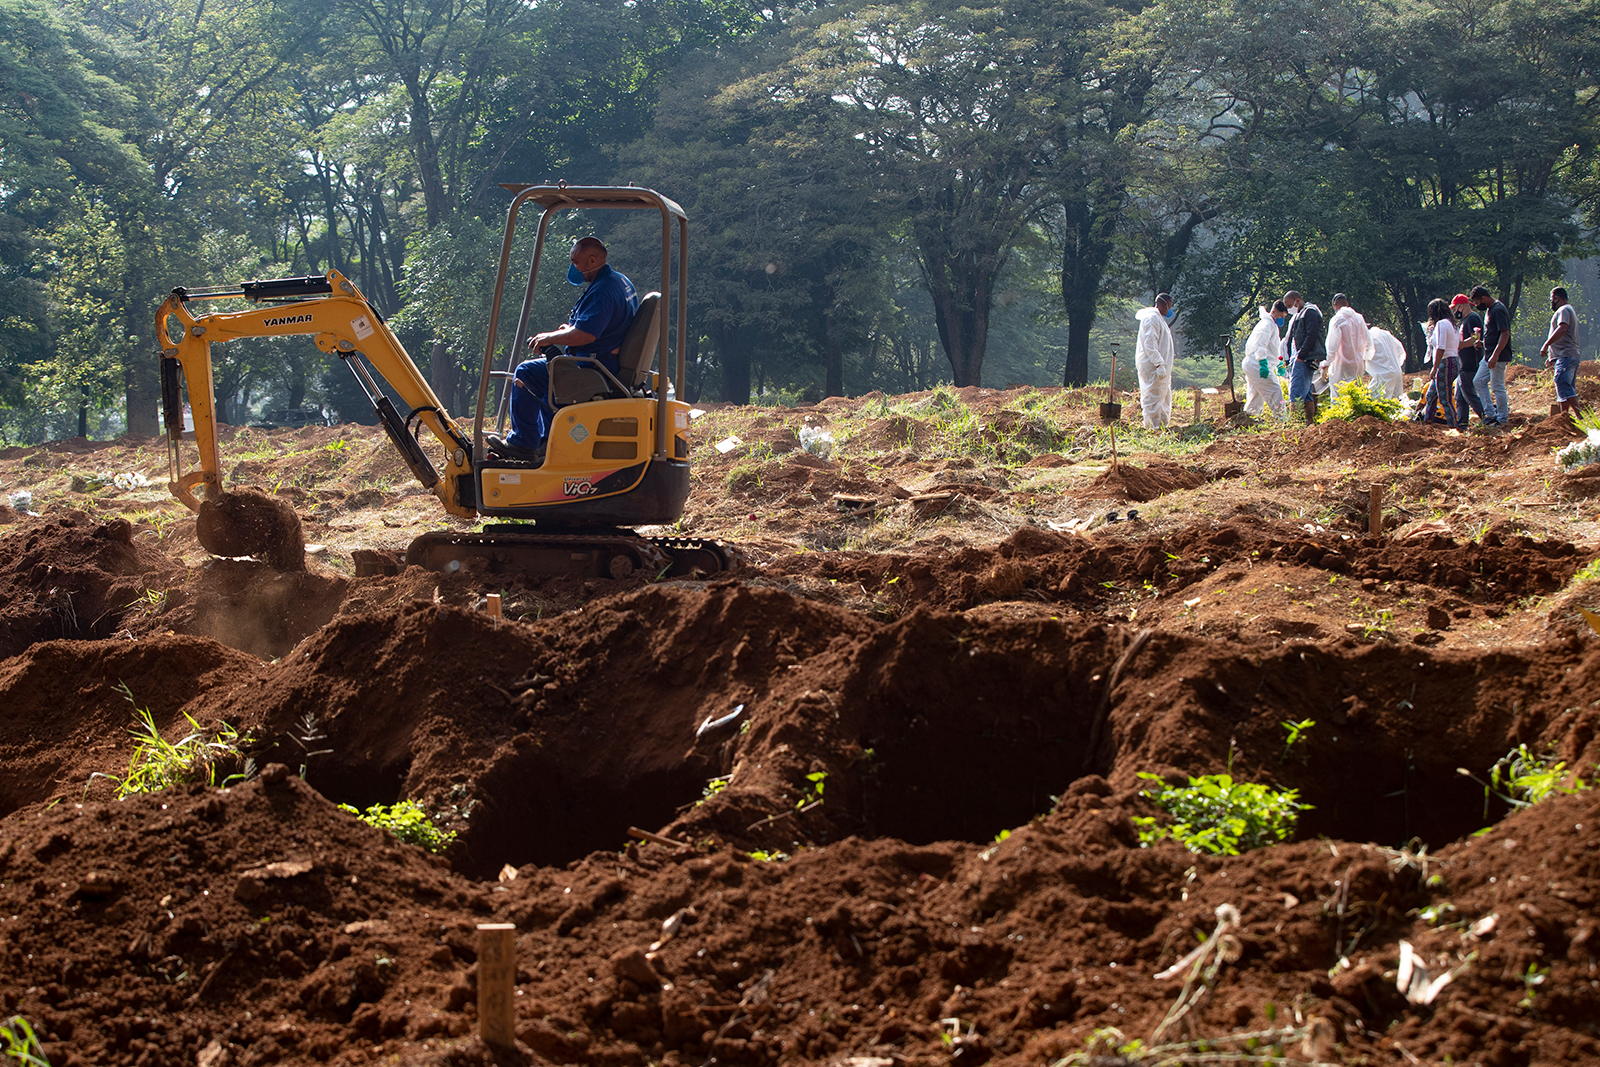 An employee uses a bulldozer to prepare more graves in Sao Paulo, Brazil, on March 11.